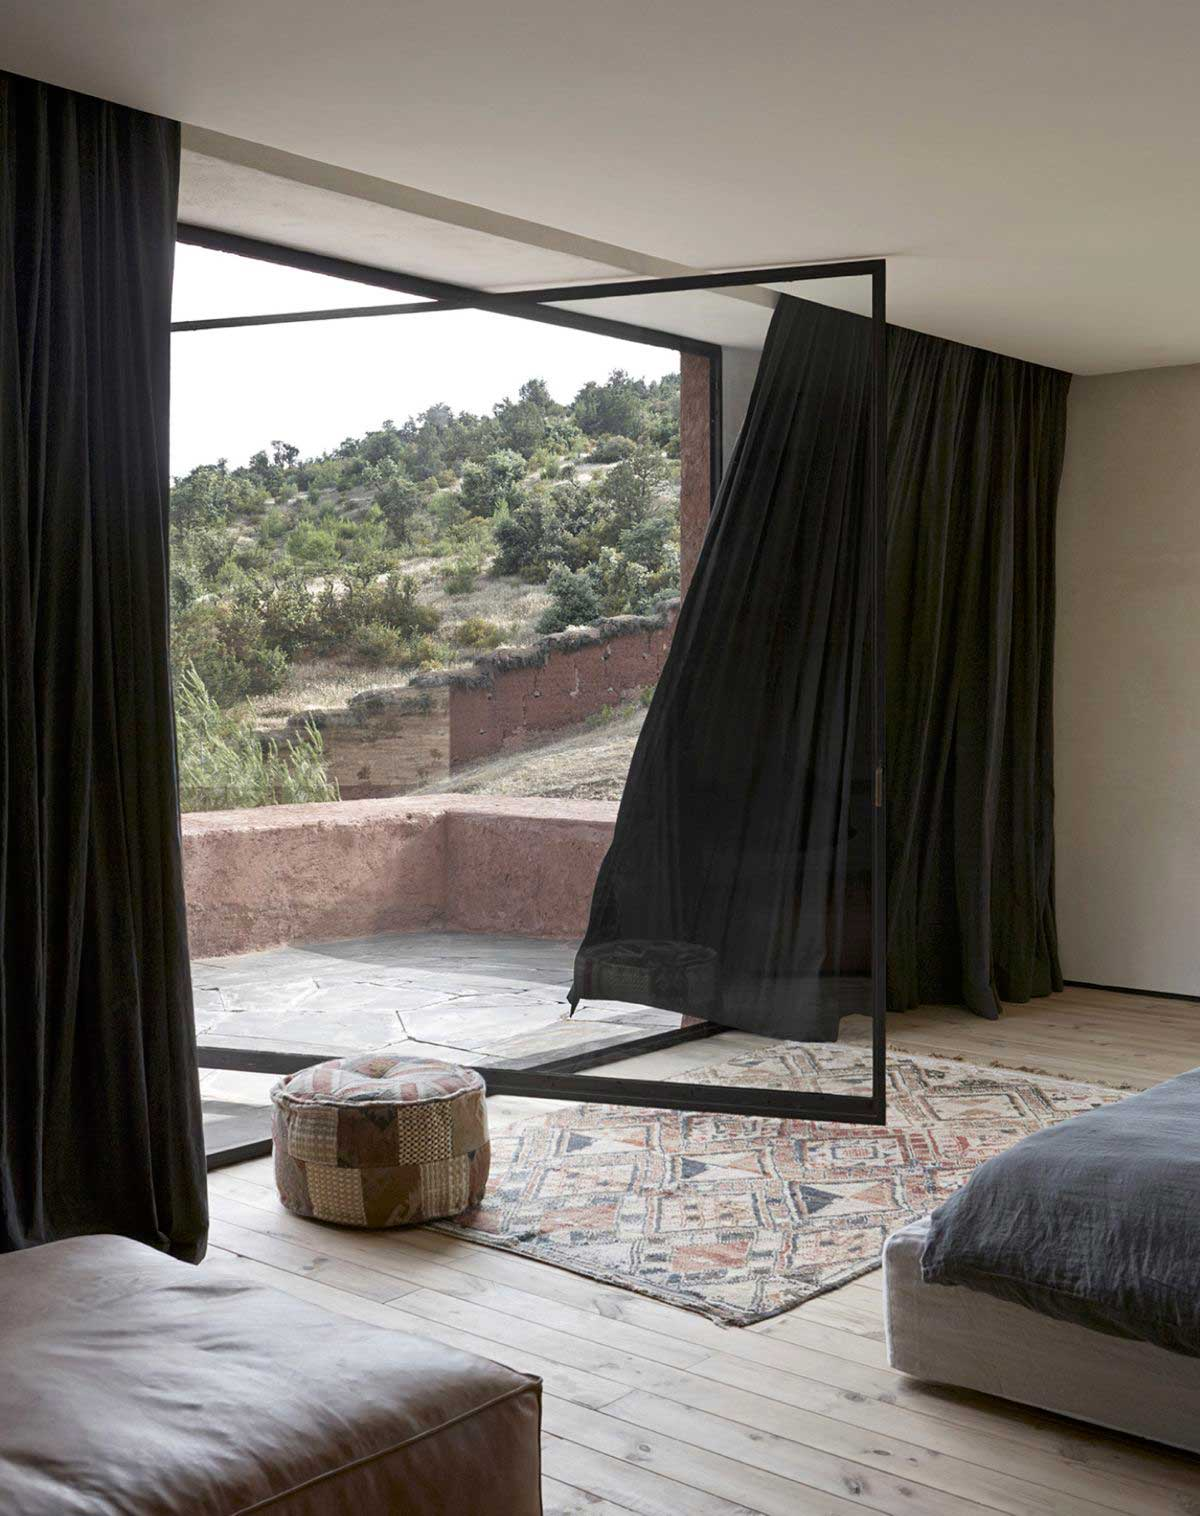 Villa E in Morocco by Studio KO | Yellowtrace